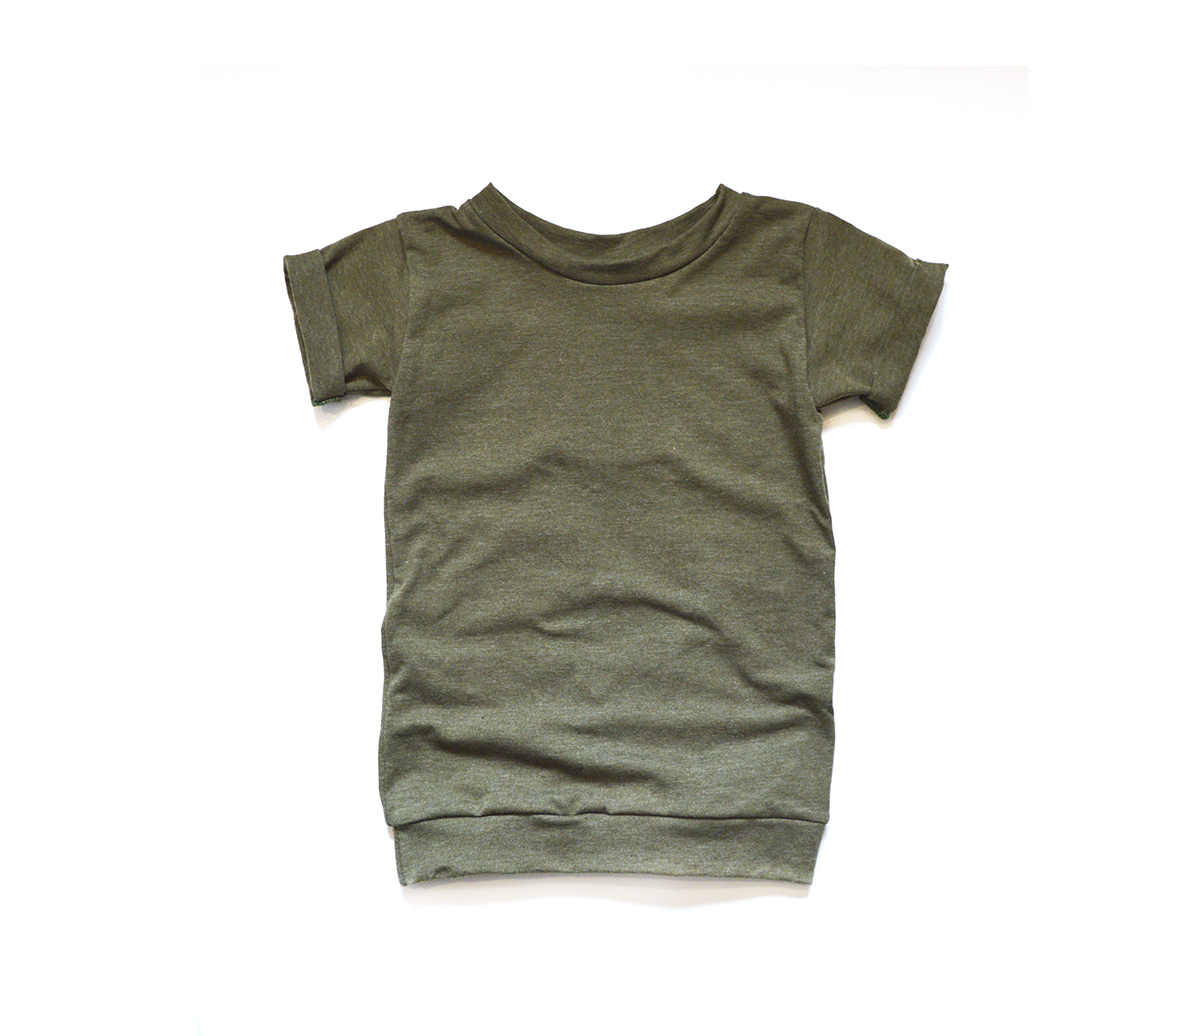 Little Sprout™ Baby to Toddler T shirt in Olive 00850